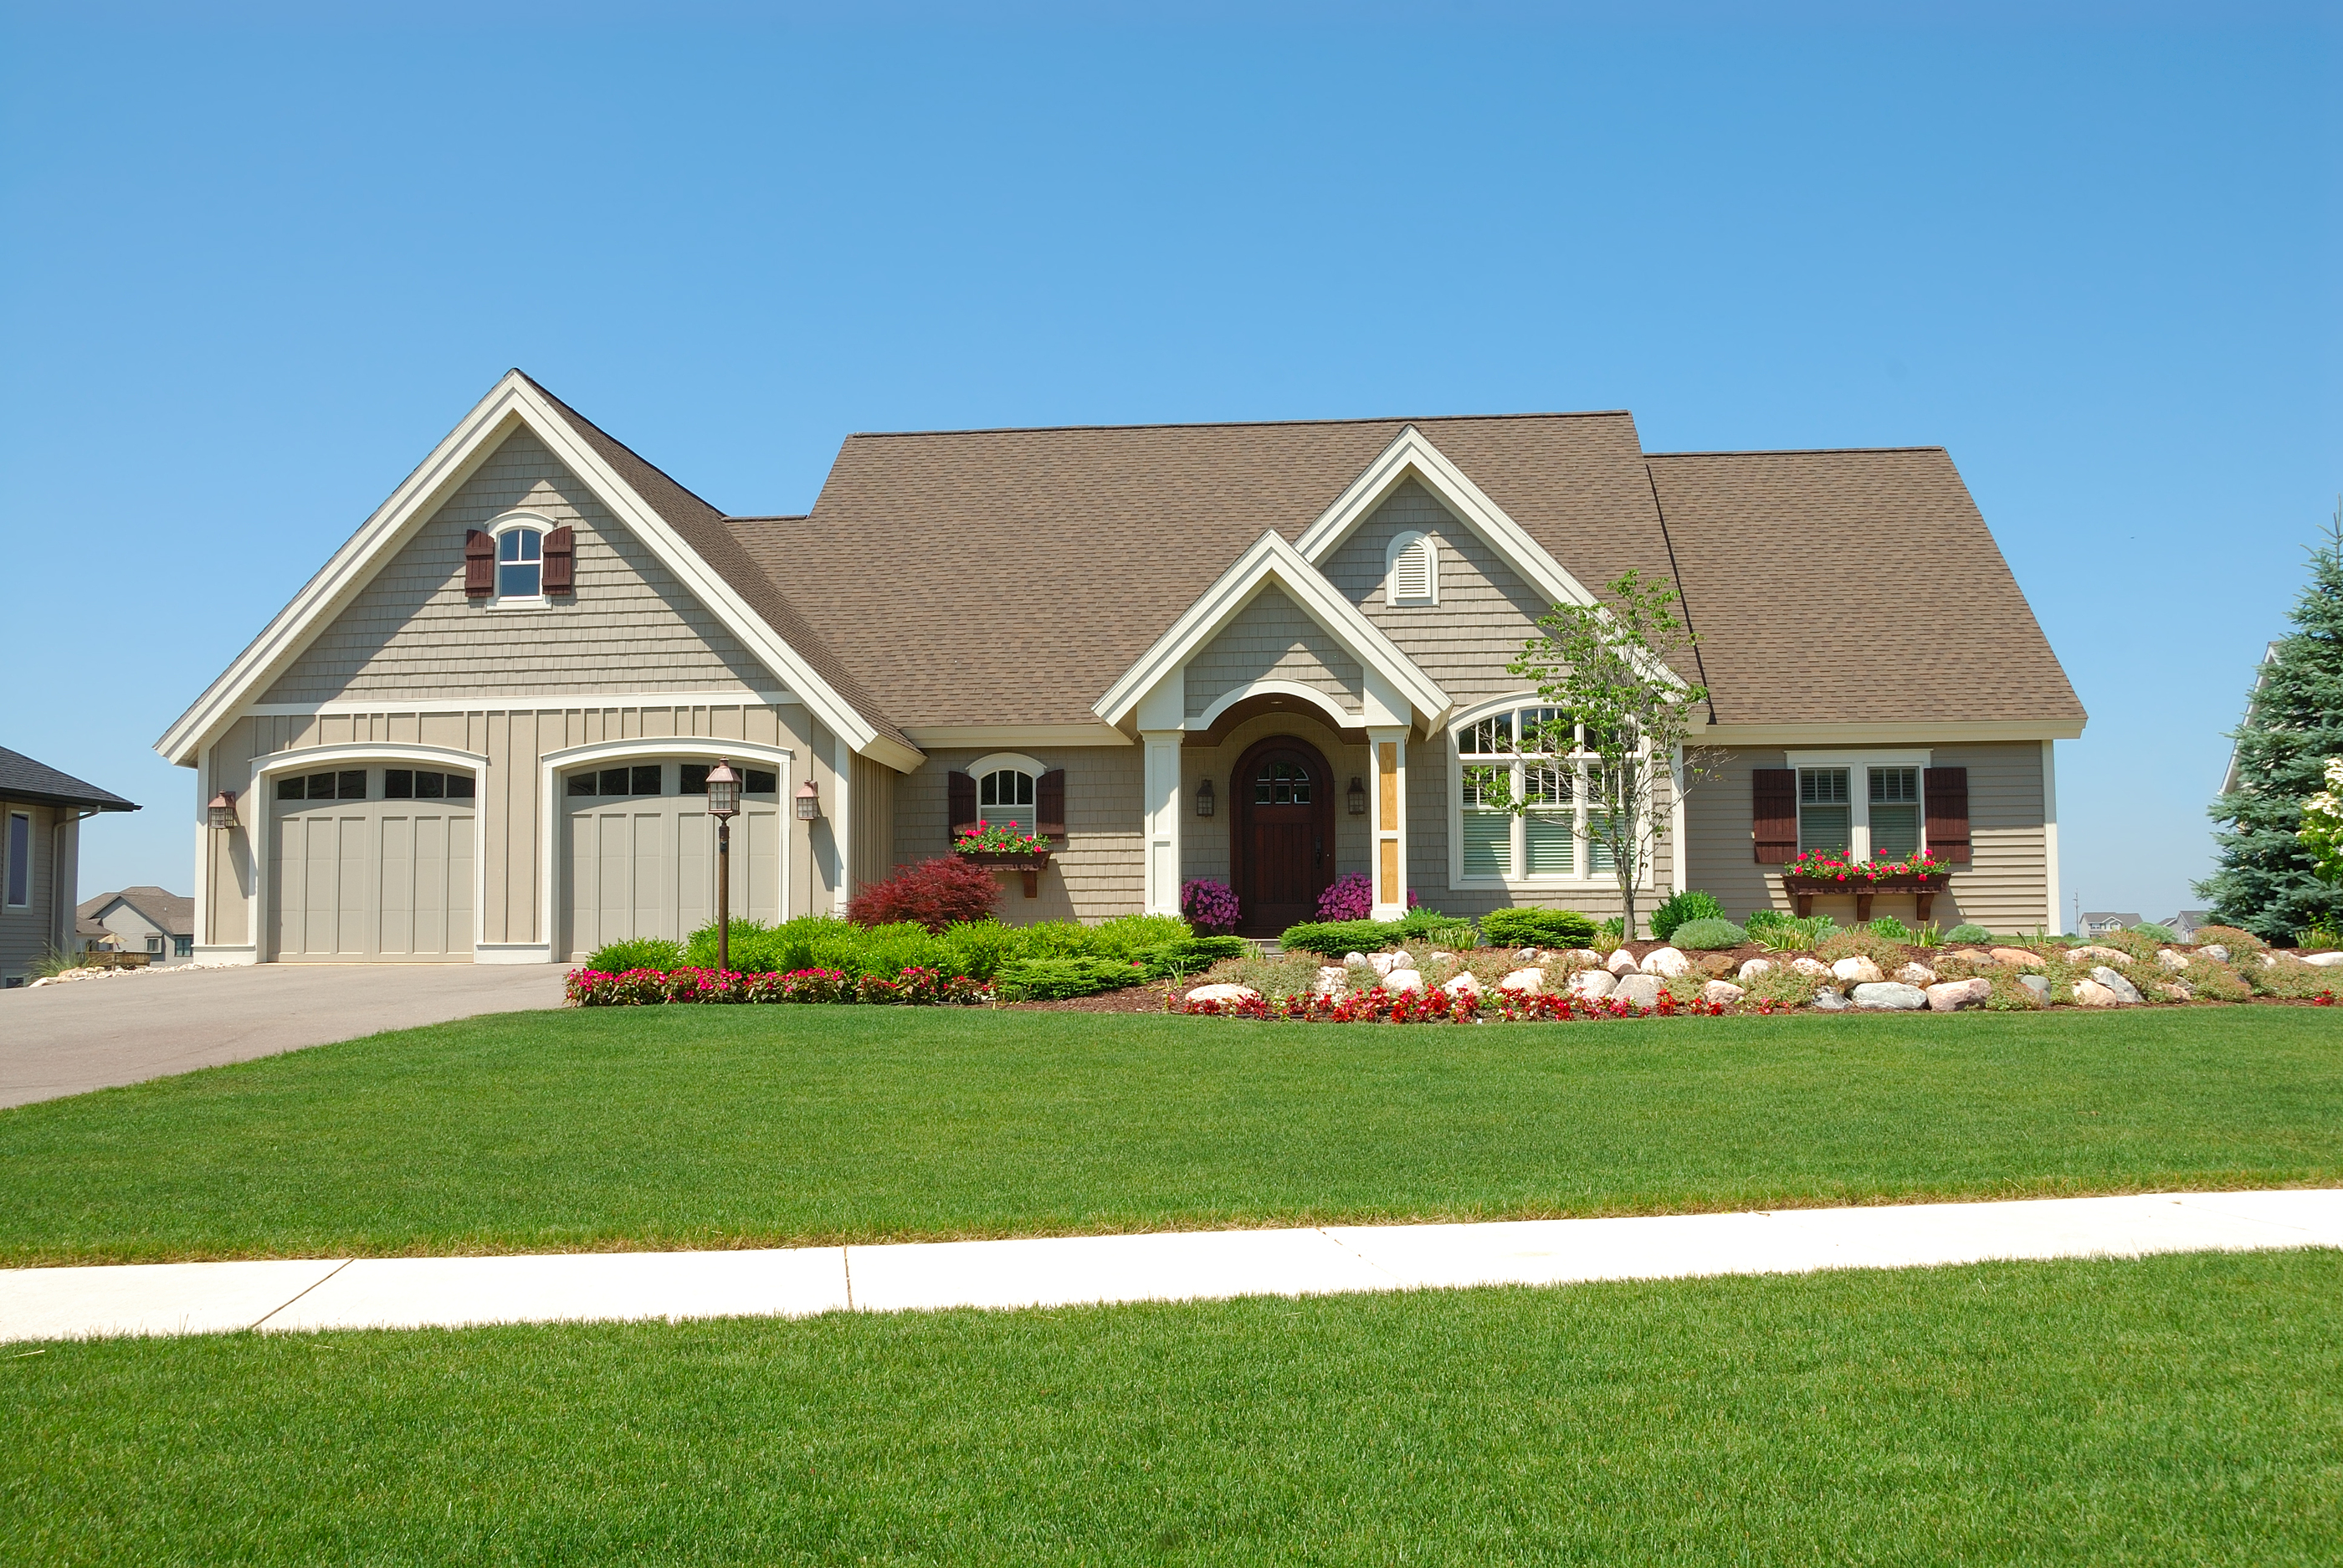 Heritage Real Estate Services, LLC specializes in Warrenton VA and